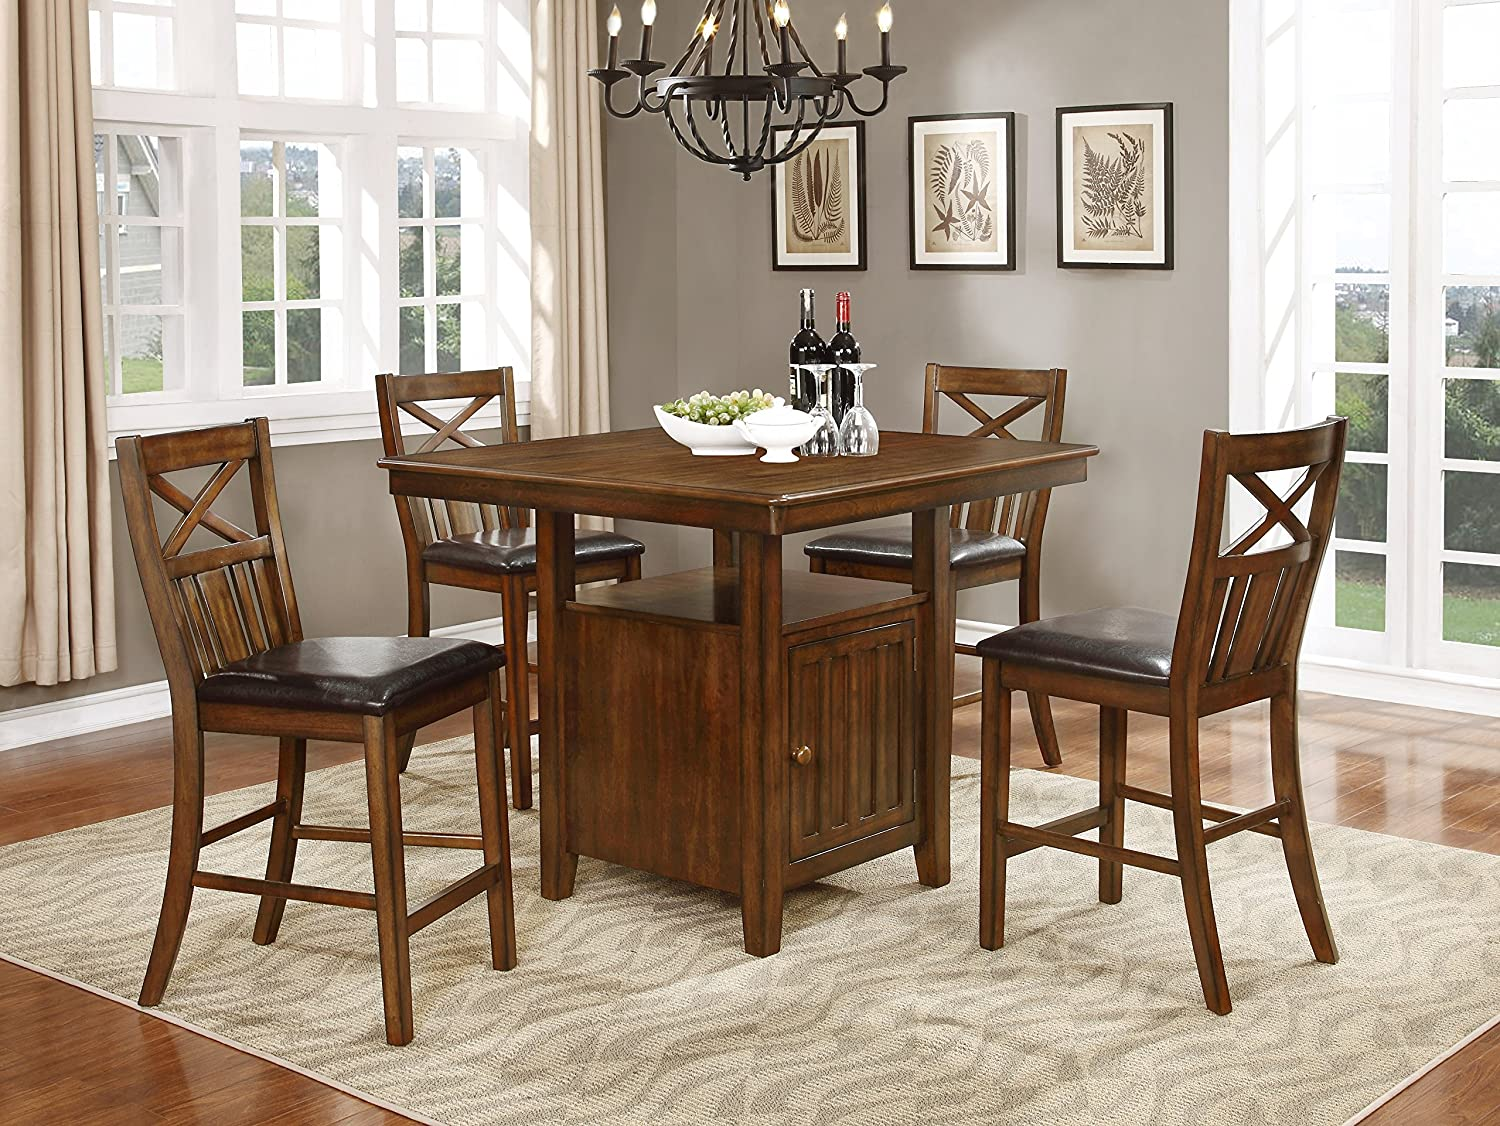 NHI Express 61160 Bryson Solid Wood Counter Height Table with Storage and  Chairs, Brown